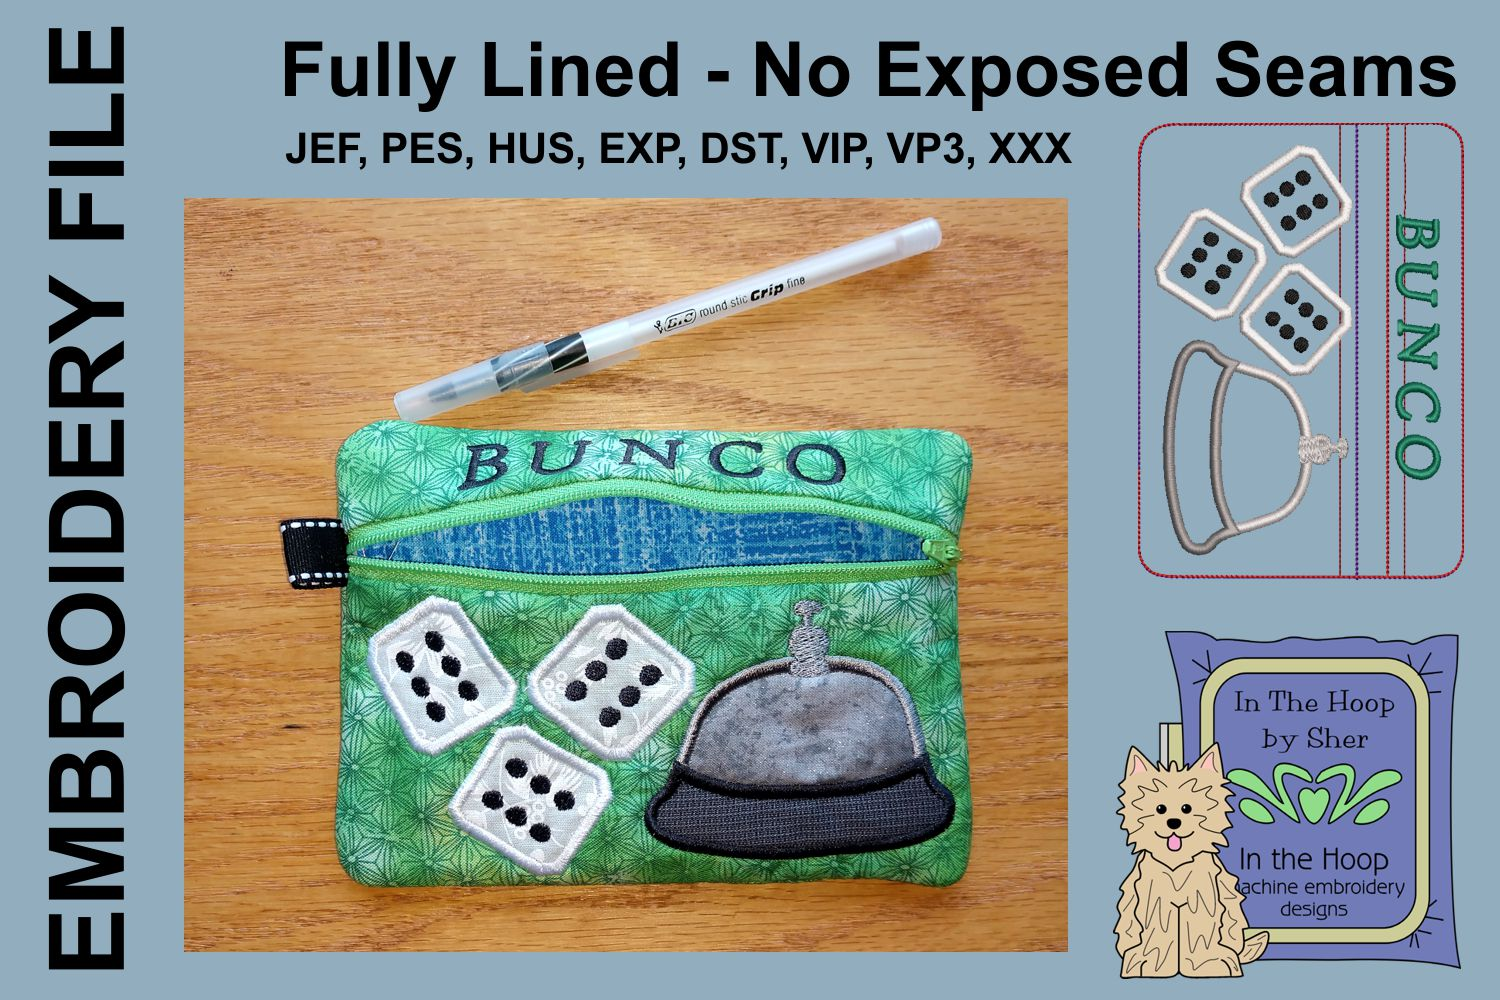 ITH Bunco Zipper Bag - Fully Lined, 5X7 HOOP example image 2